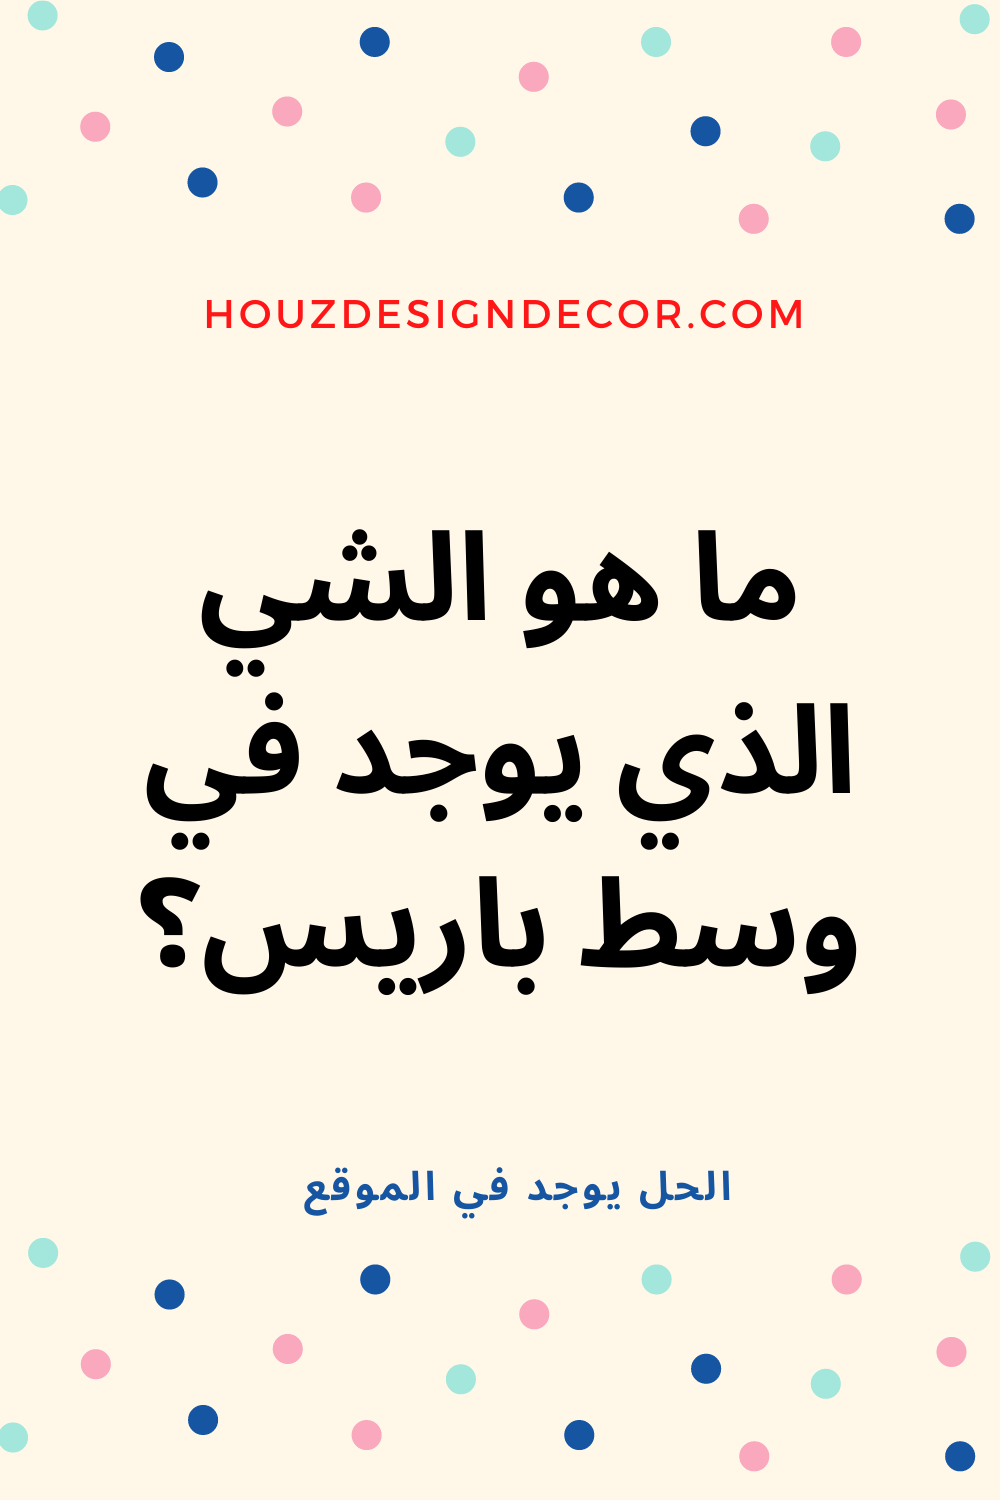 Pin By قصص قبل النوم On لغز مع الحل Riddles With Answers Riddles Hard Riddles